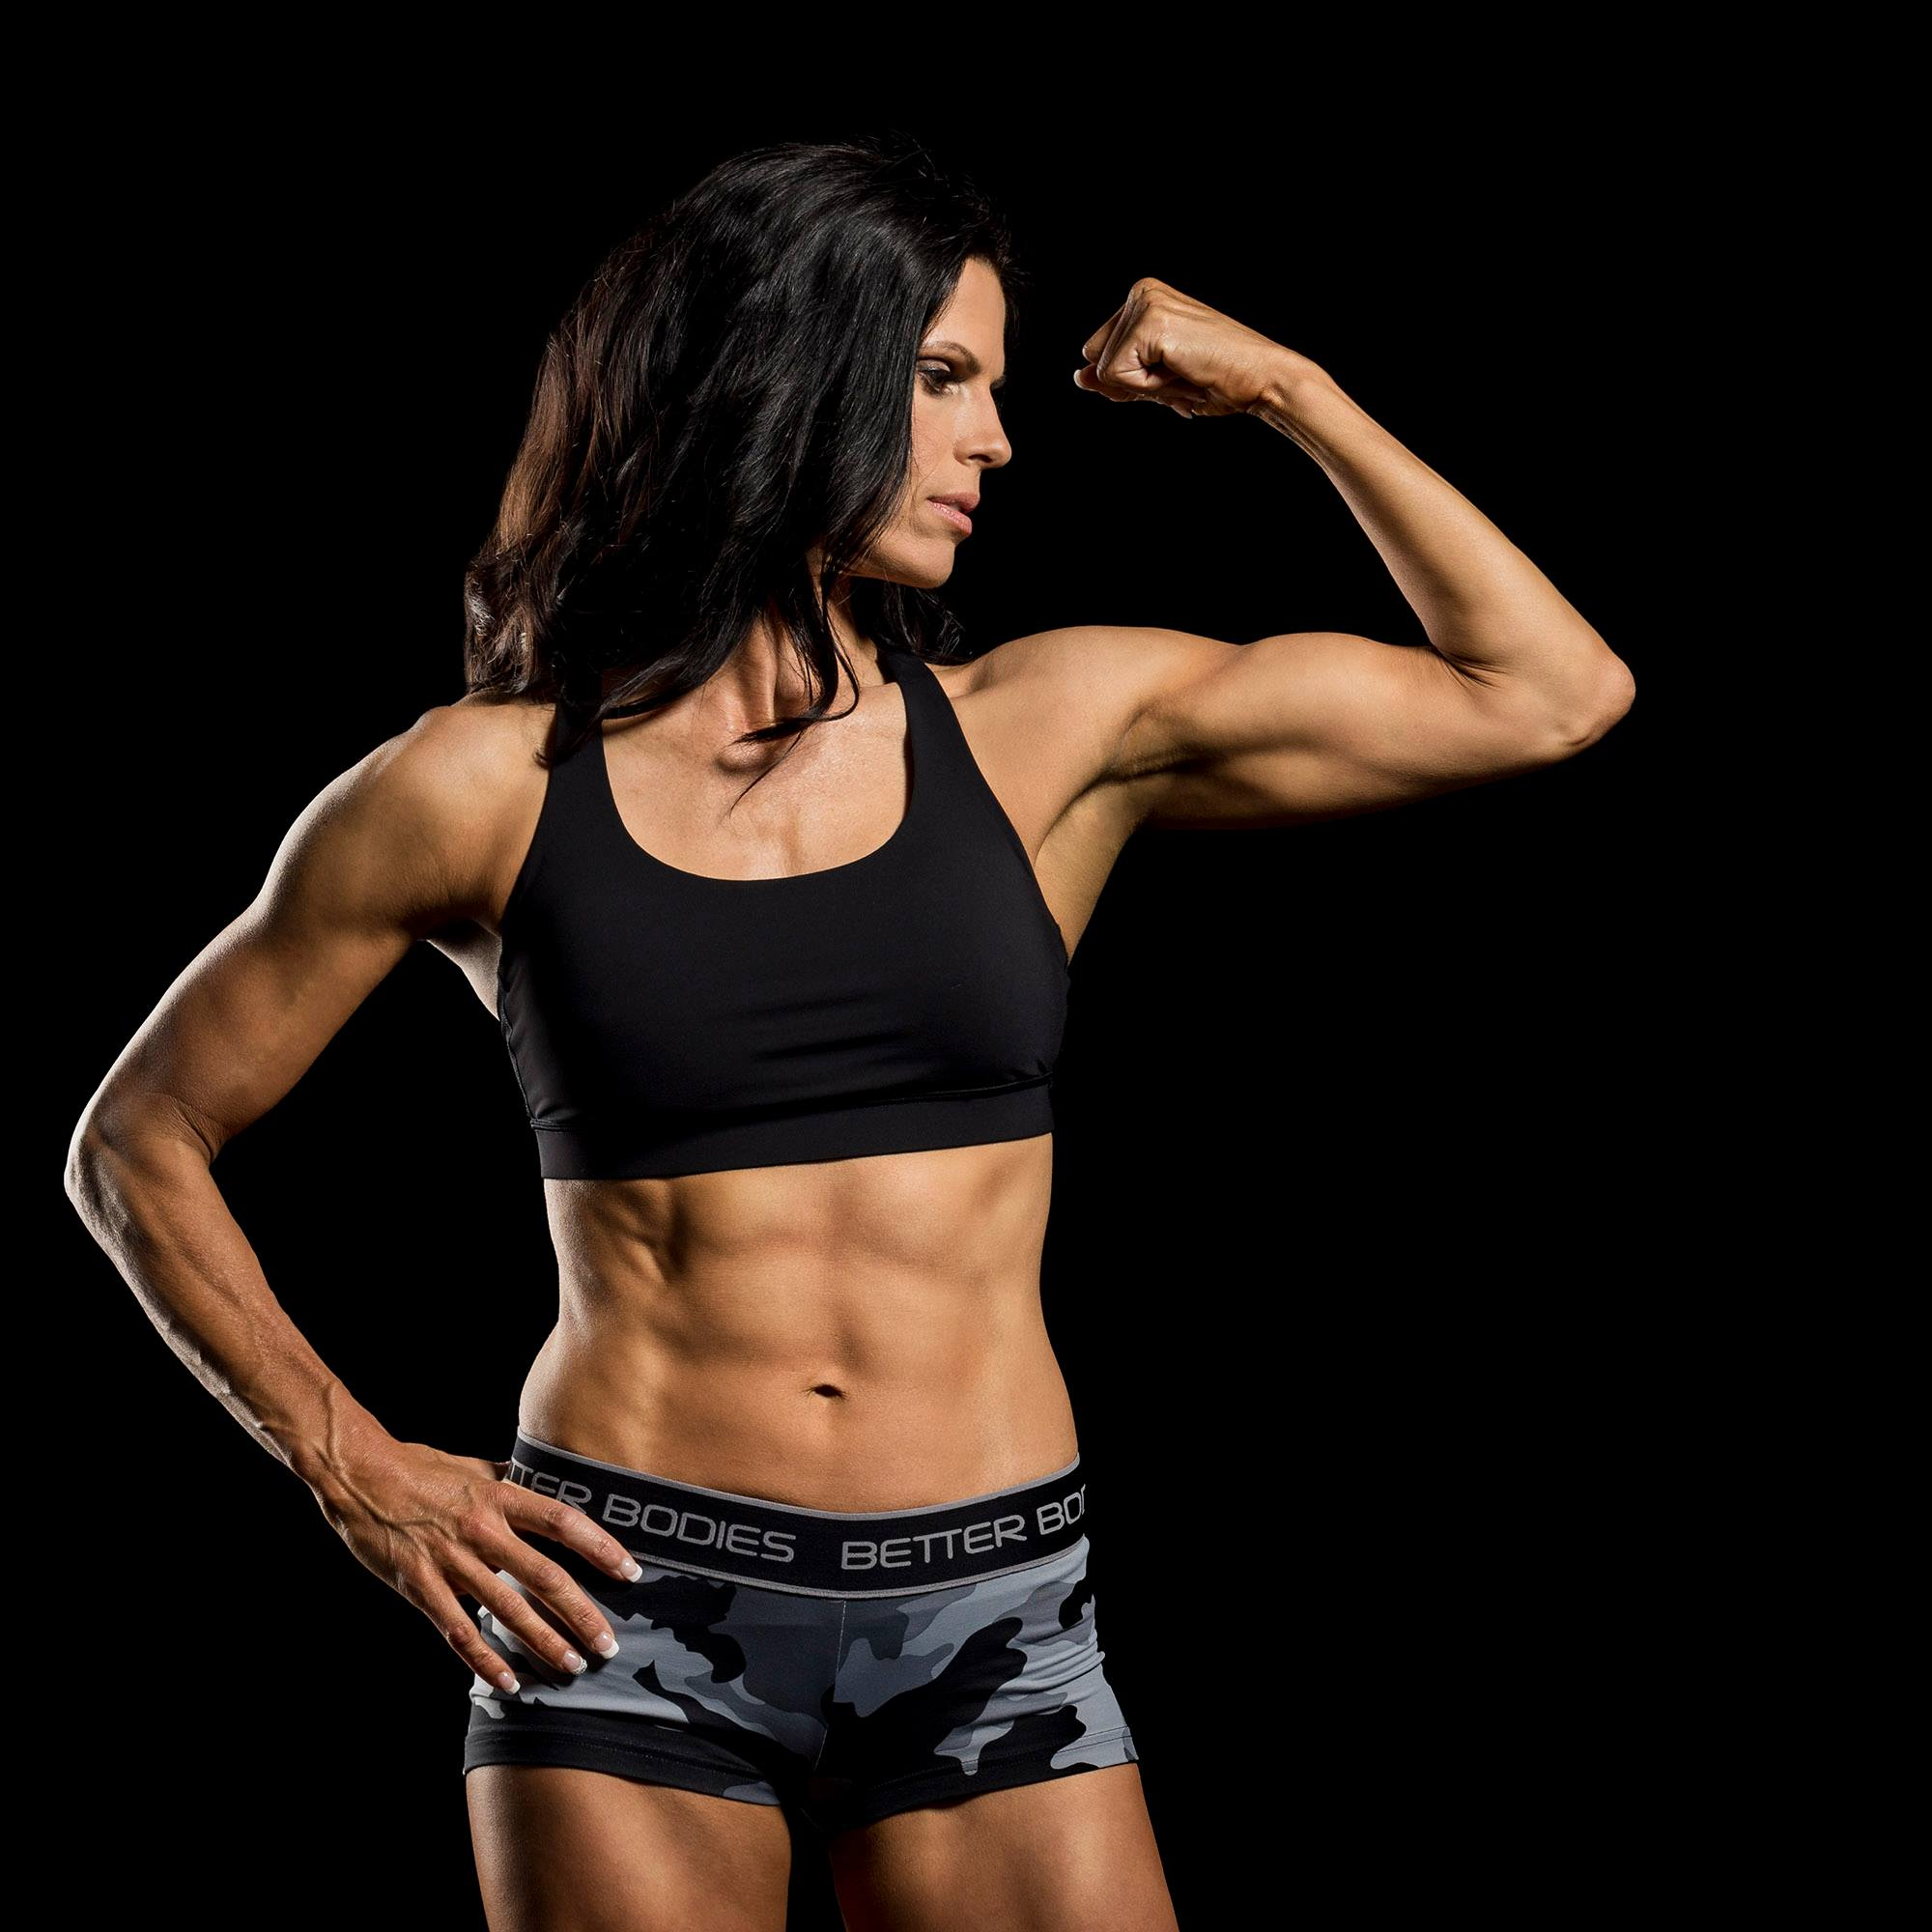 Terri here showing off her superior arms and abs.